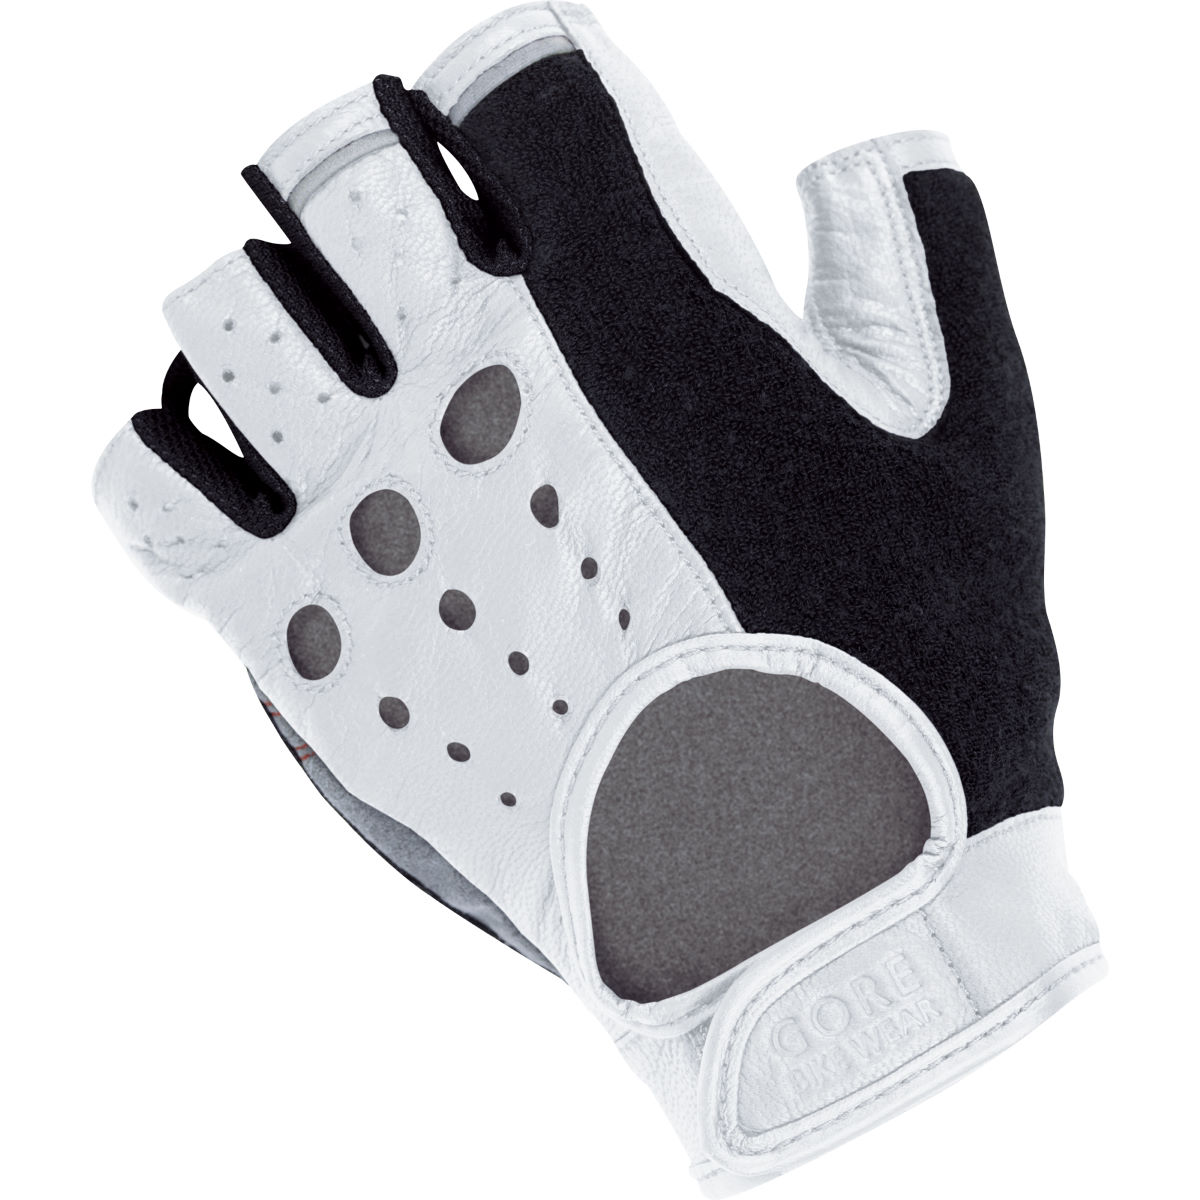 Gore Bike Wear Retro Tech Short Finger Cycling Gloves